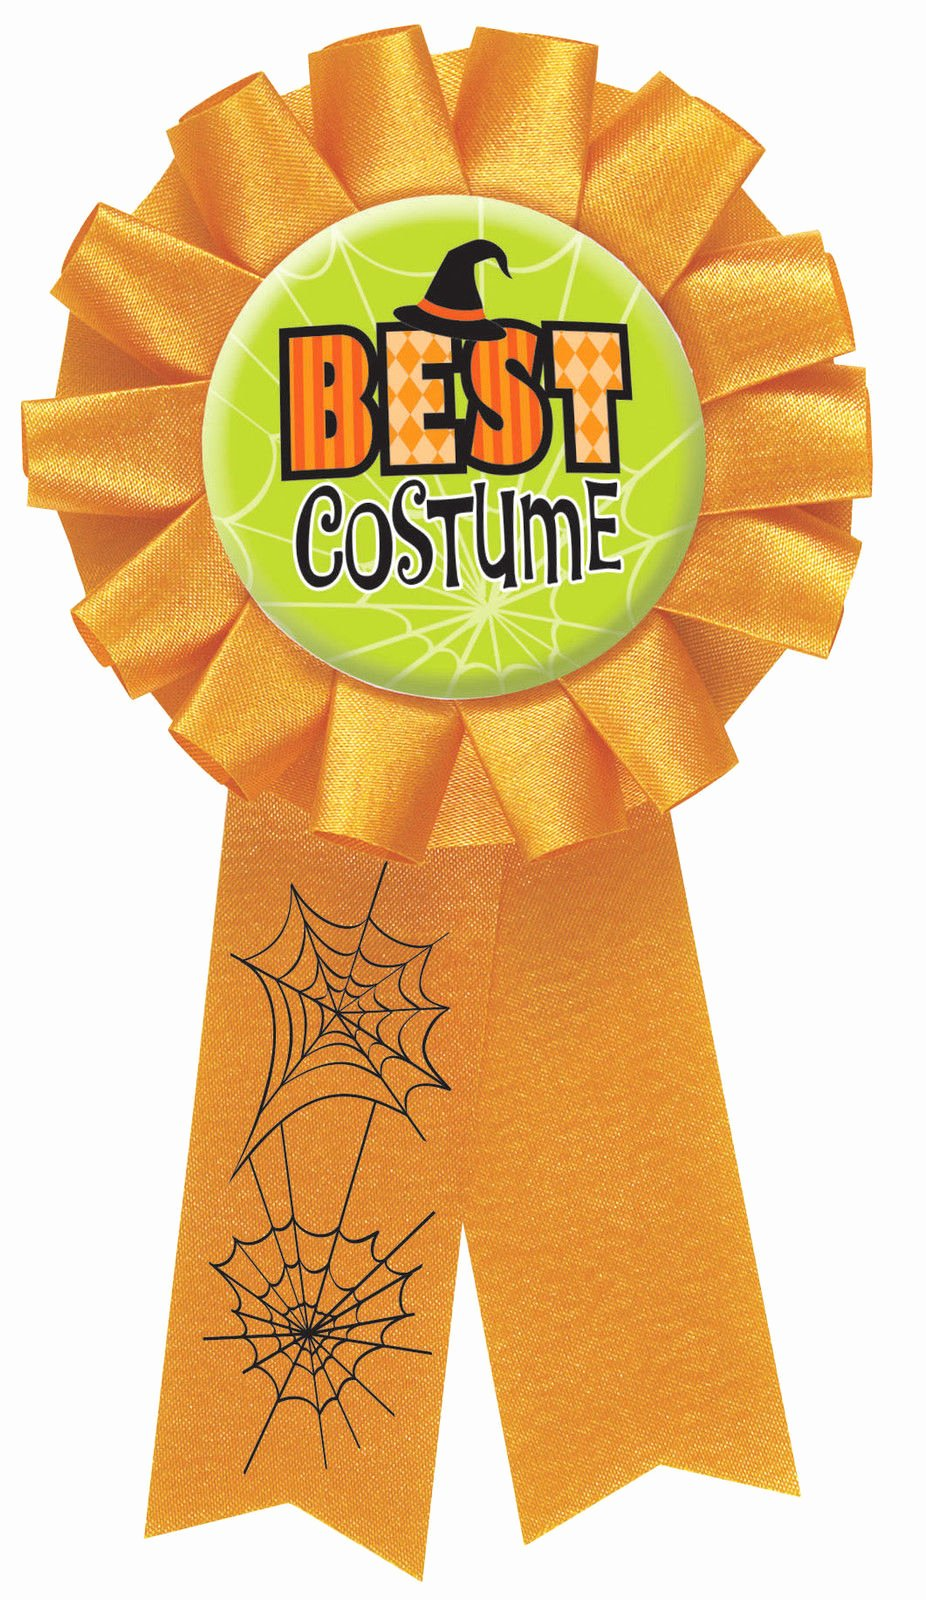 Best Costume Award Template Unique Halloween Party Best Costume Award Rosette Medal Prize